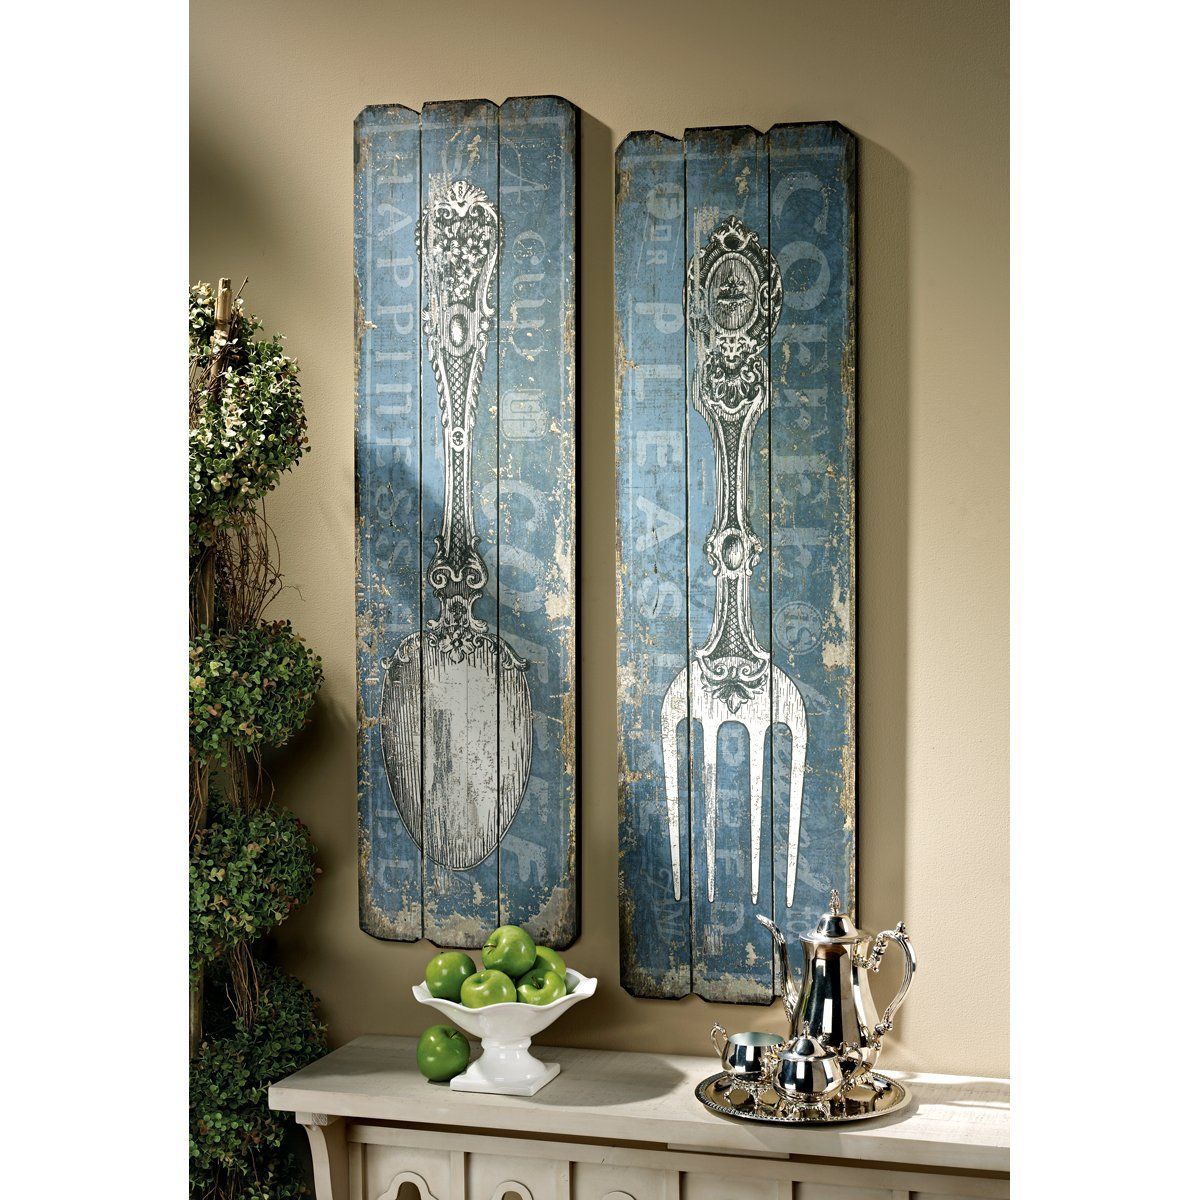 Amazon.com: Vintage Fork and Spoon Wall Art (Set of 2): Home ...